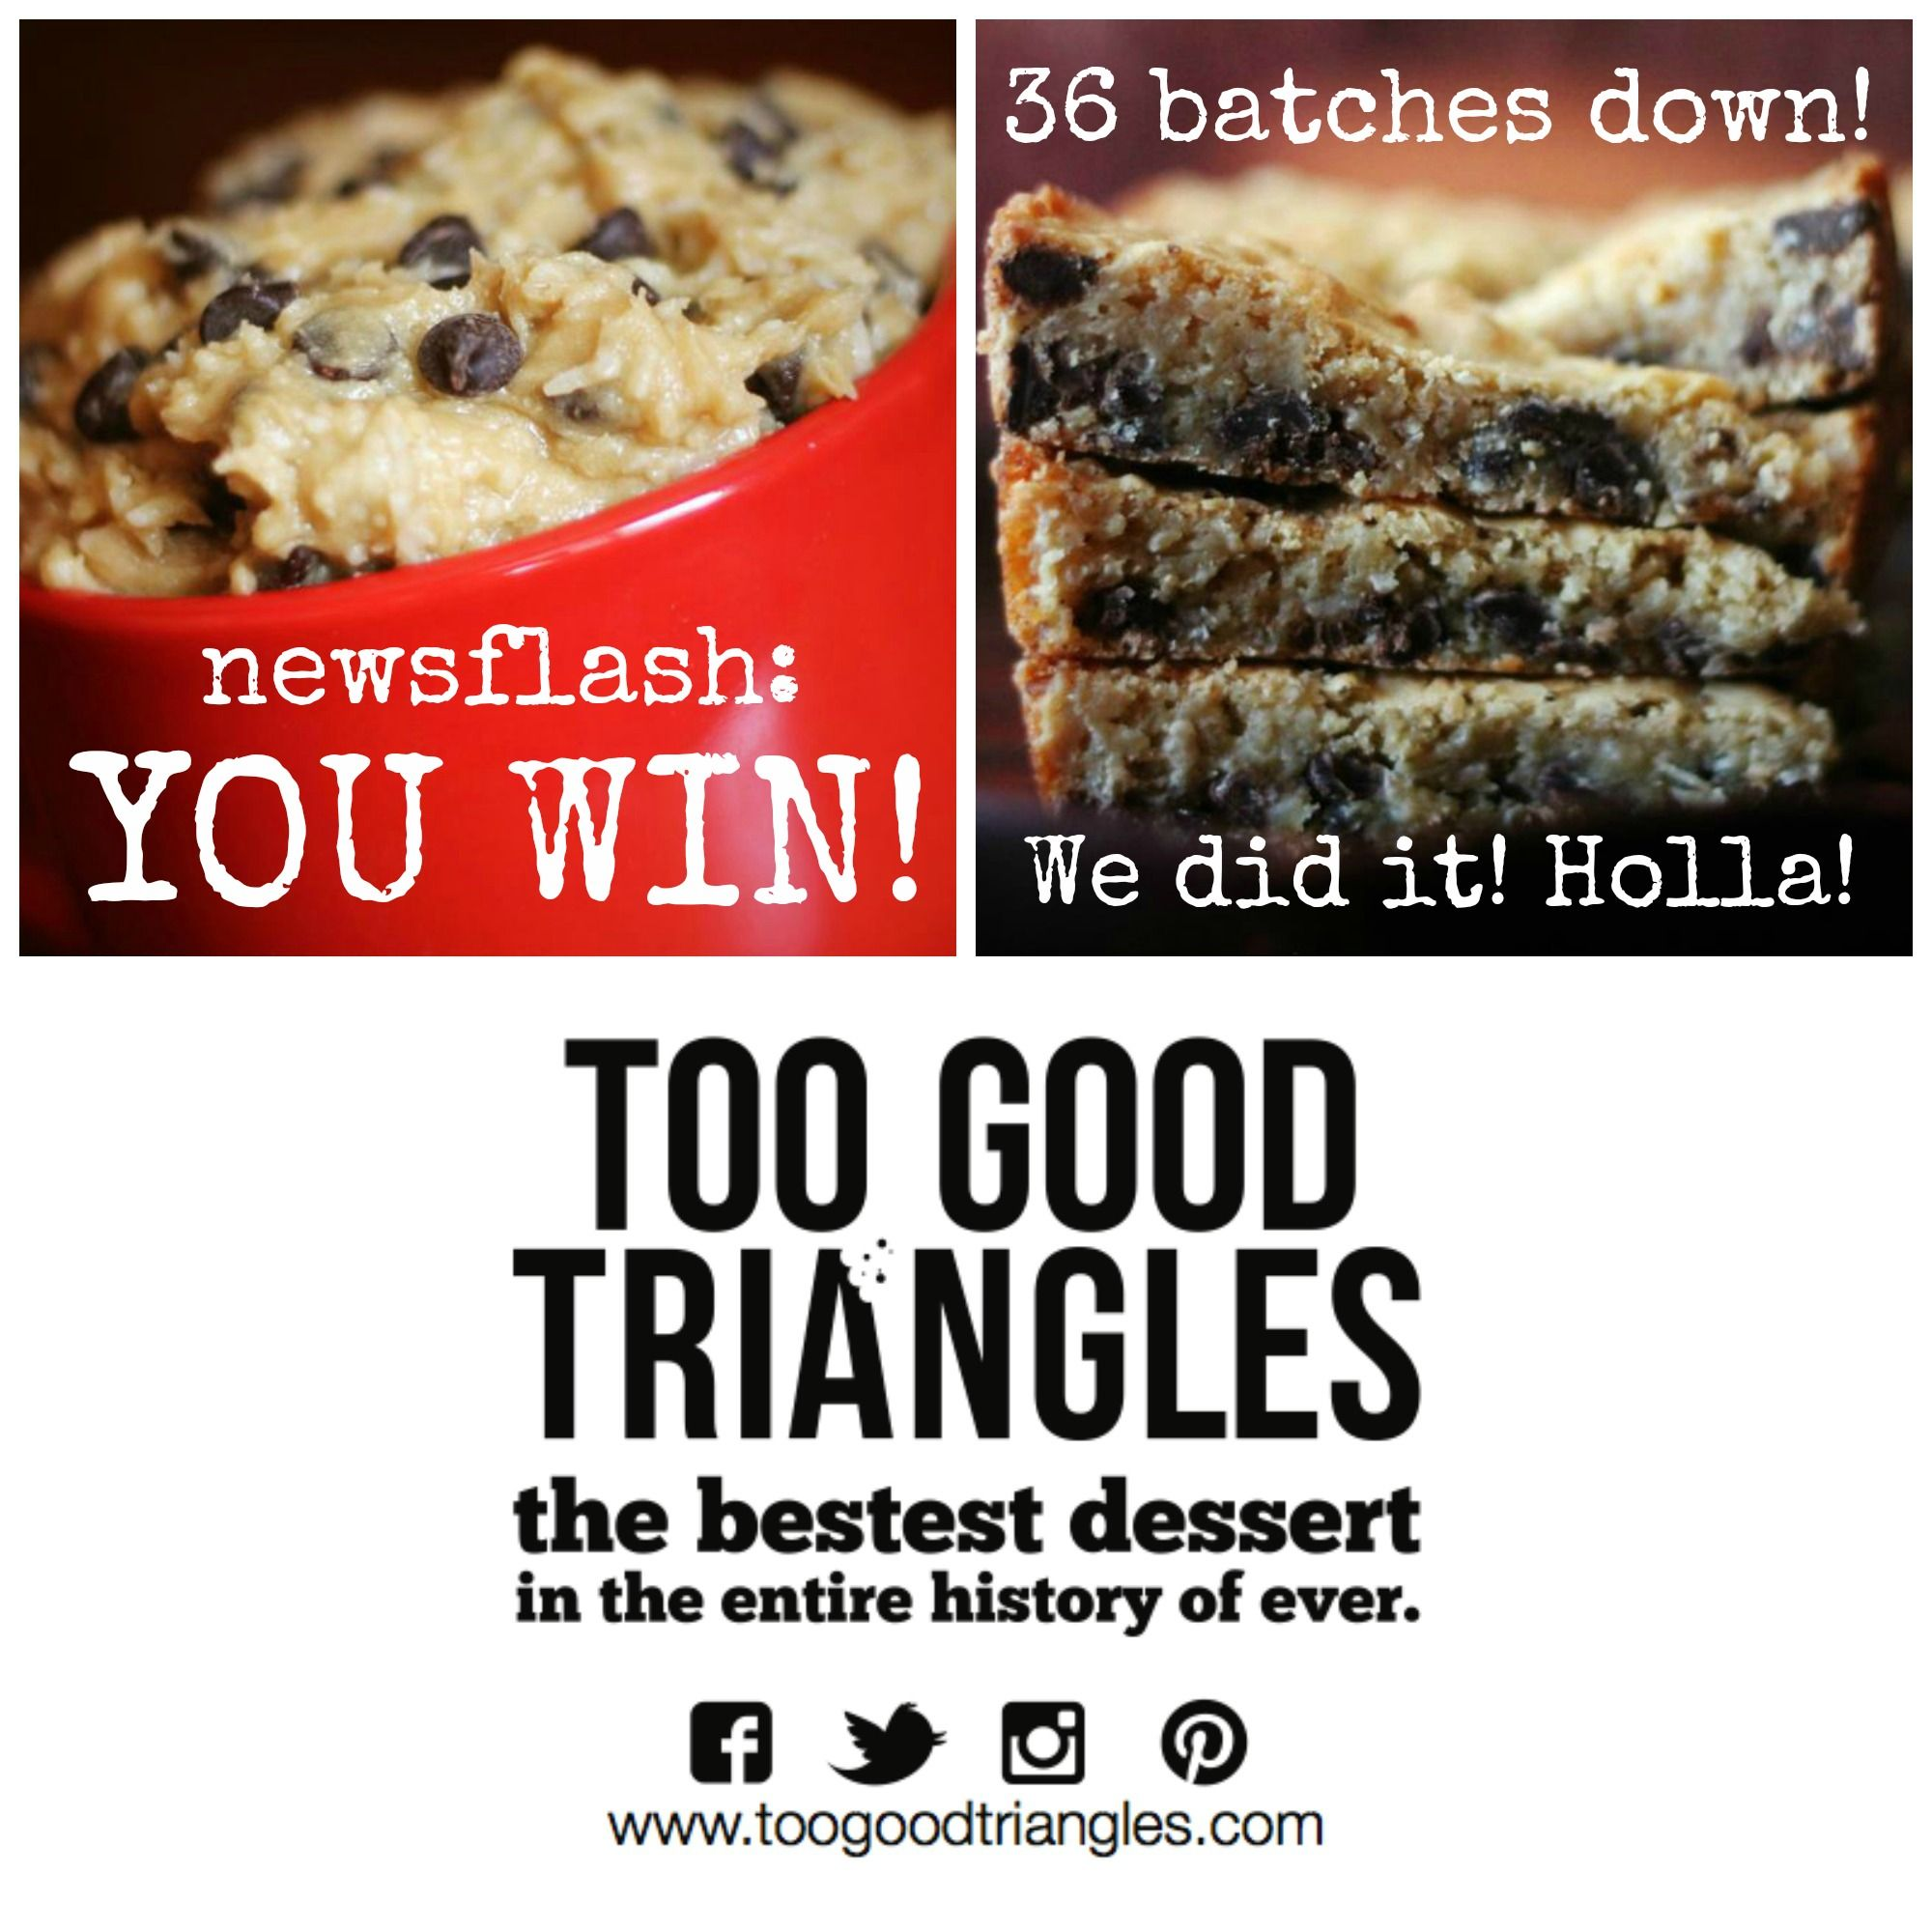 Congrats to all 8 of today's #8daysofawesome winners! Sierra_val, Alanna Johnson, Noubelia Sousa, Valerie Bush, Angela Lovely, Jessica Hill, Jason Lovely, and Kelly Sanzsole. Email mandy@toogoodtriangles.com to arrange your pick up or delivery. #happybirthdayTGT #tgt #toogoodtriangles